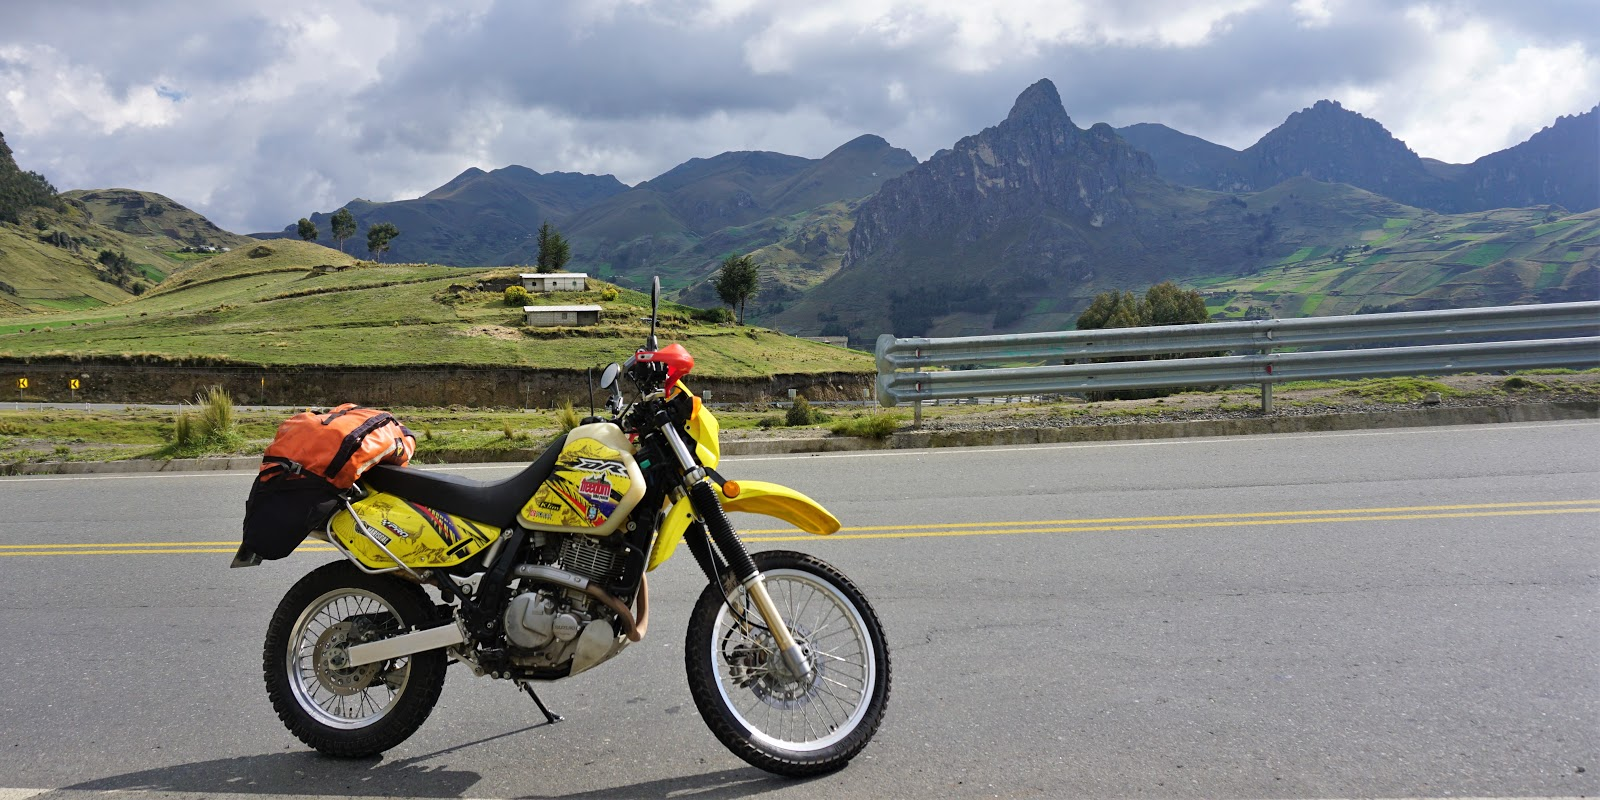 Circuito Quilotoa : The mountain lioness: riding the quilotoa loop